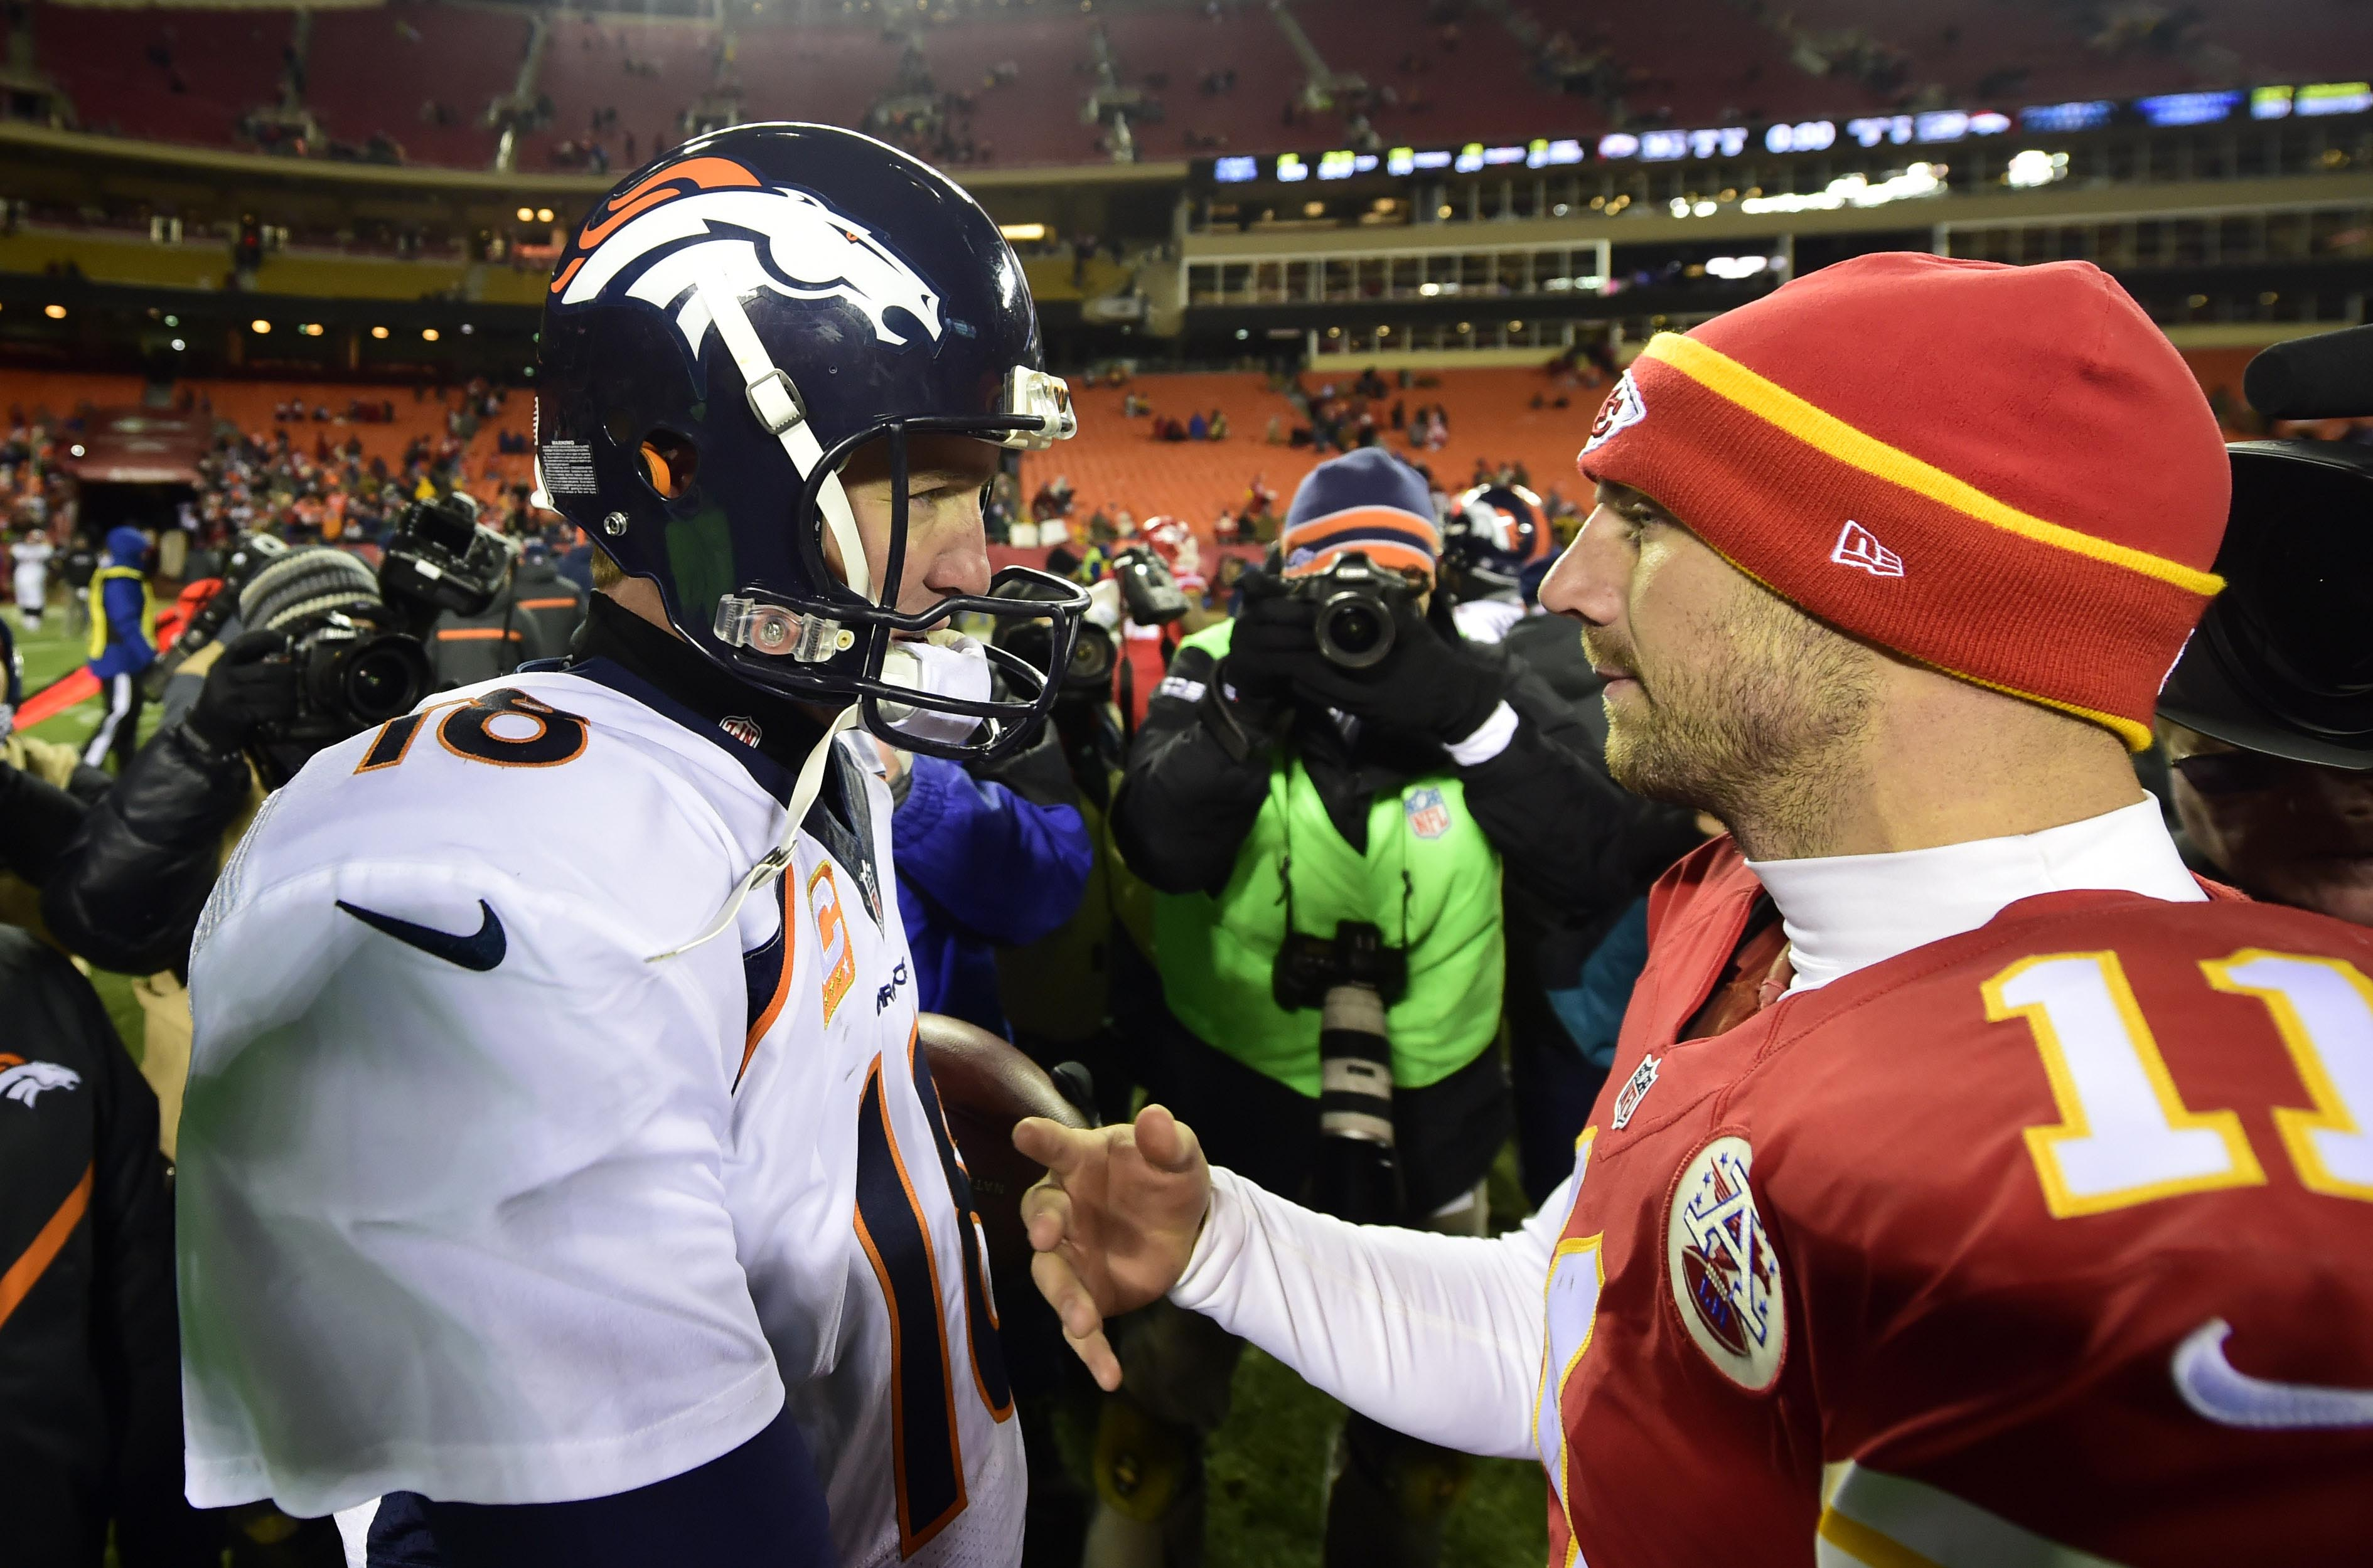 Thank you, Alex, for allowing me to break the record against your hapless team. I'll remember you in my HOF induction speech.